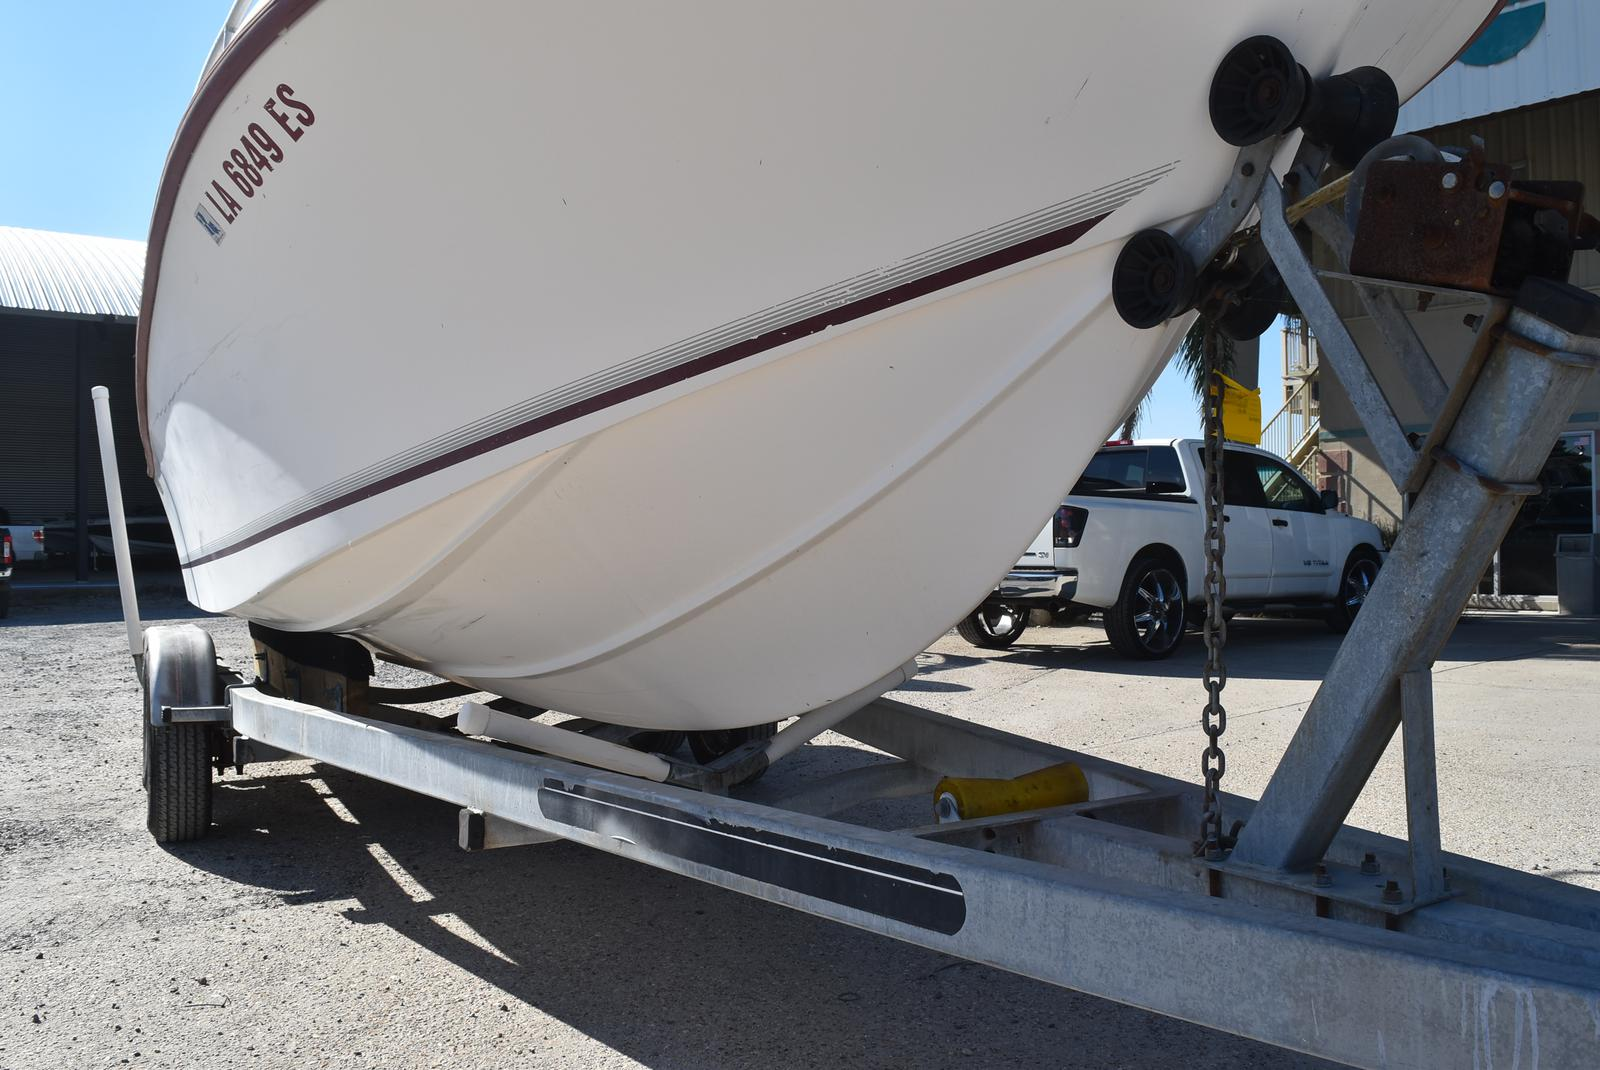 1996 Mako boat for sale, model of the boat is 22 Mako & Image # 106 of 390